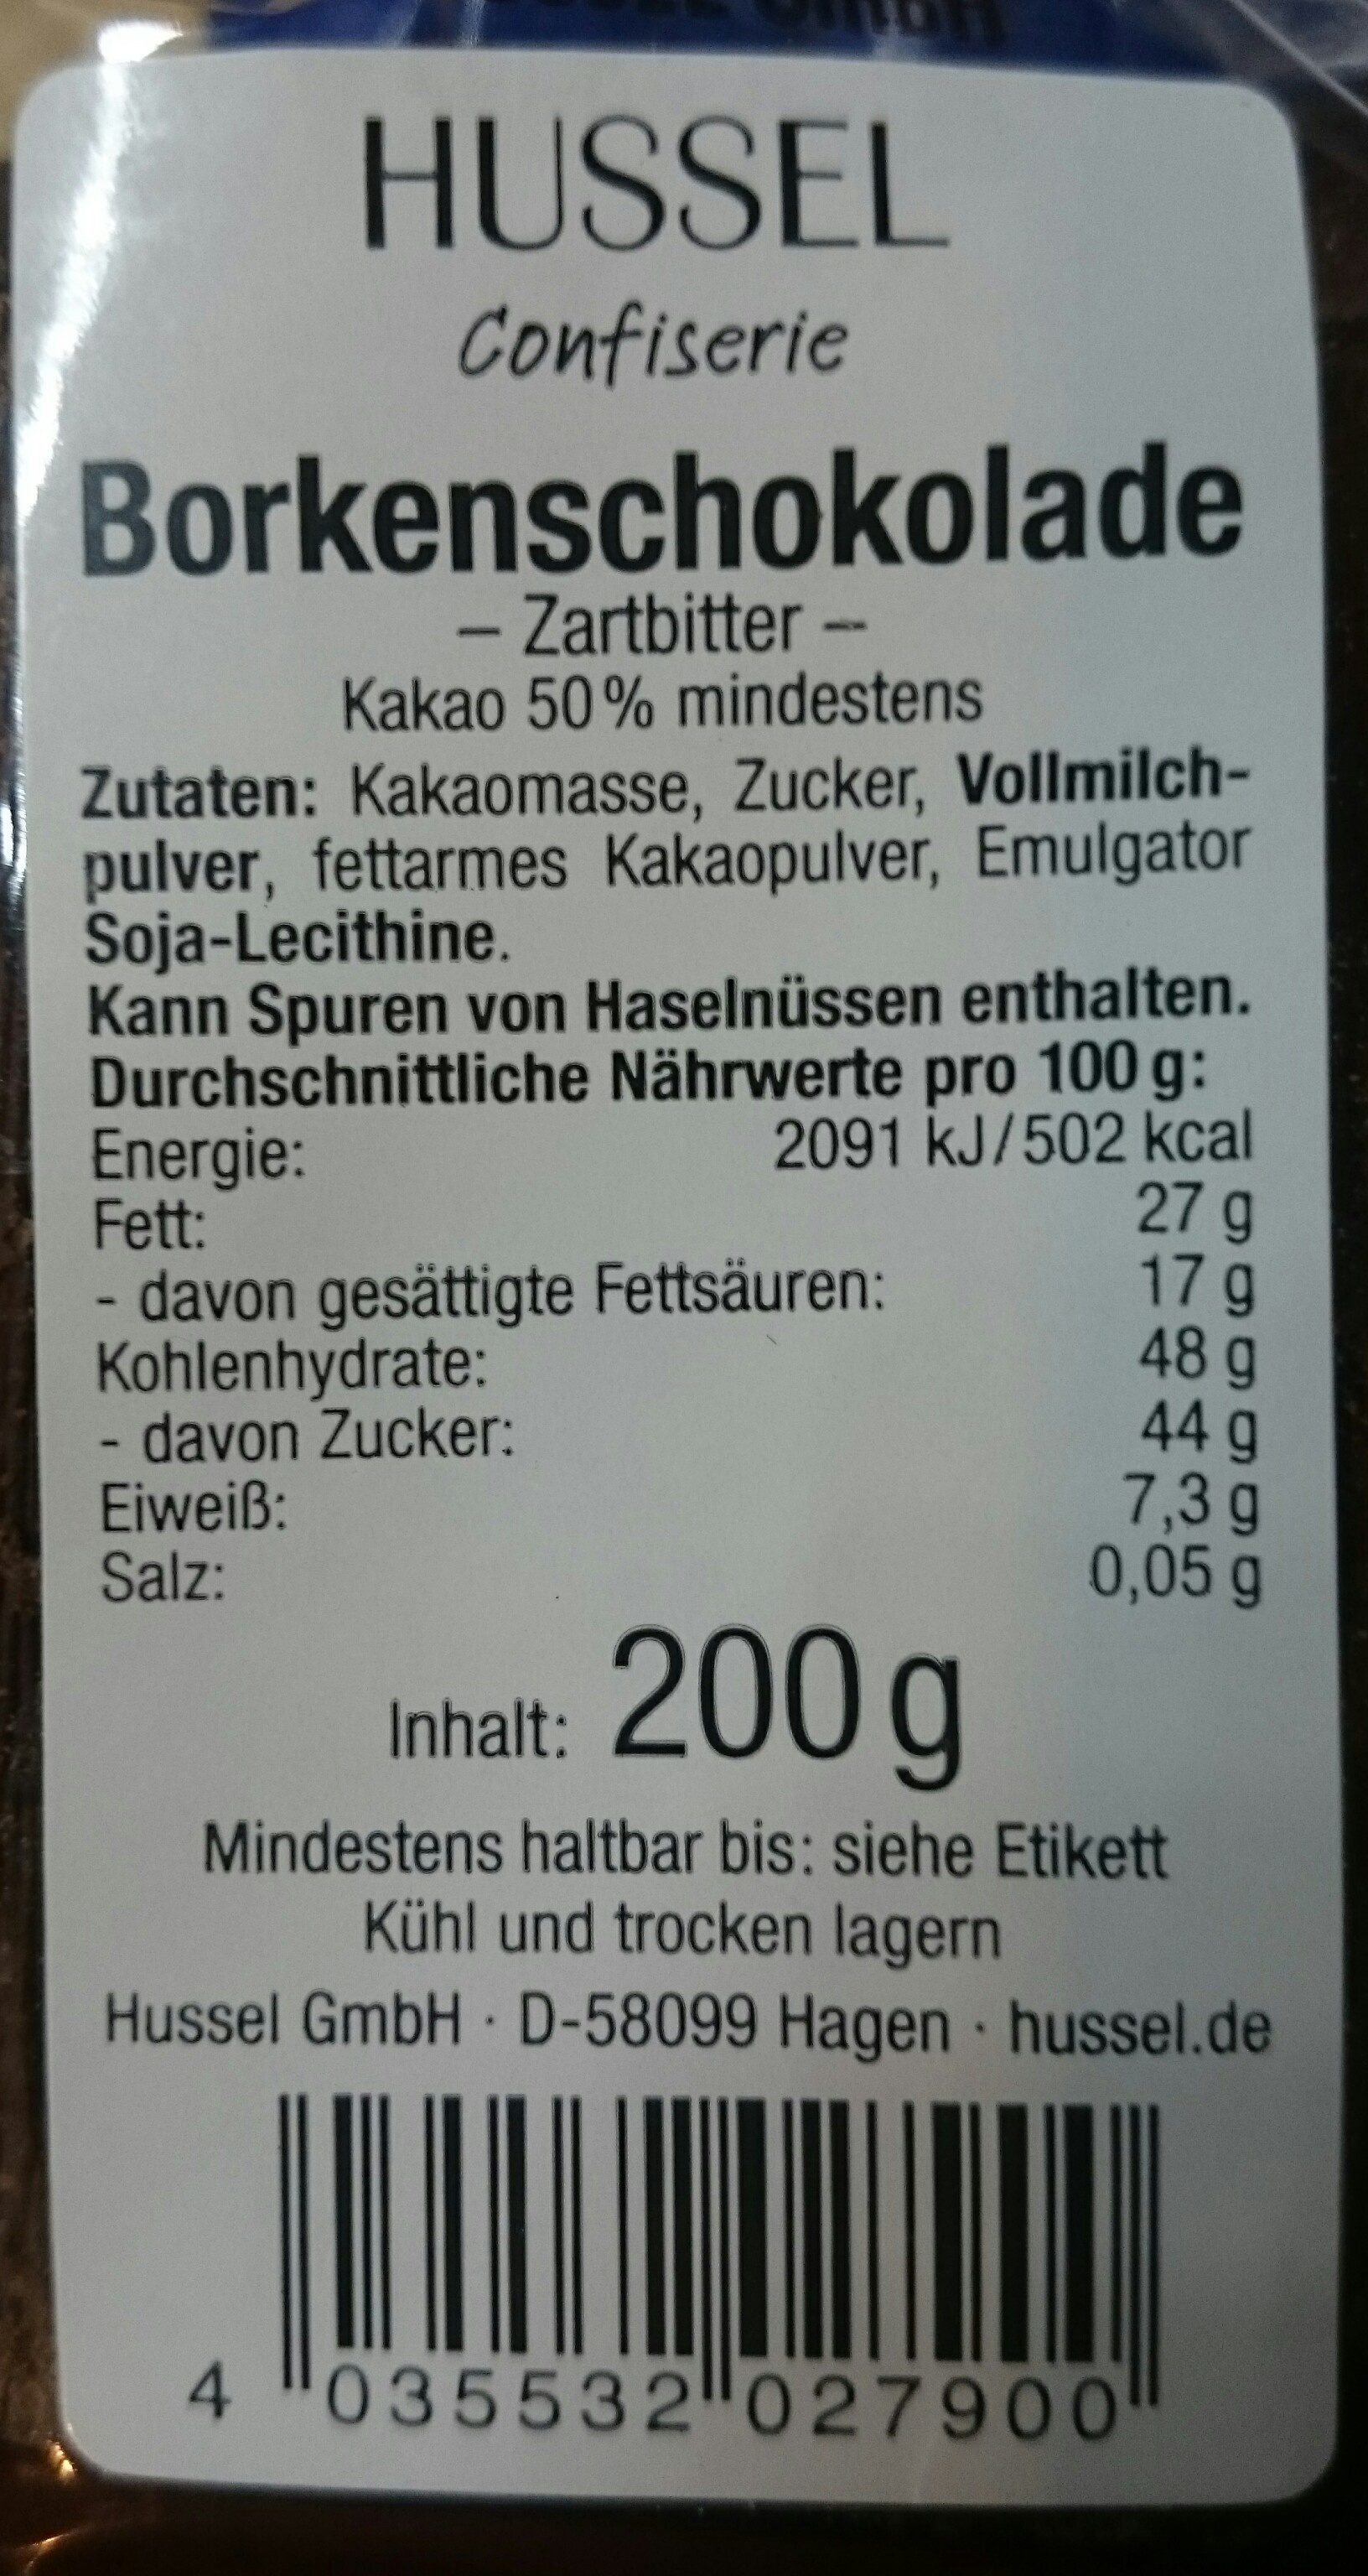 Borkenschokolade Zartbitter - Ingredients - en